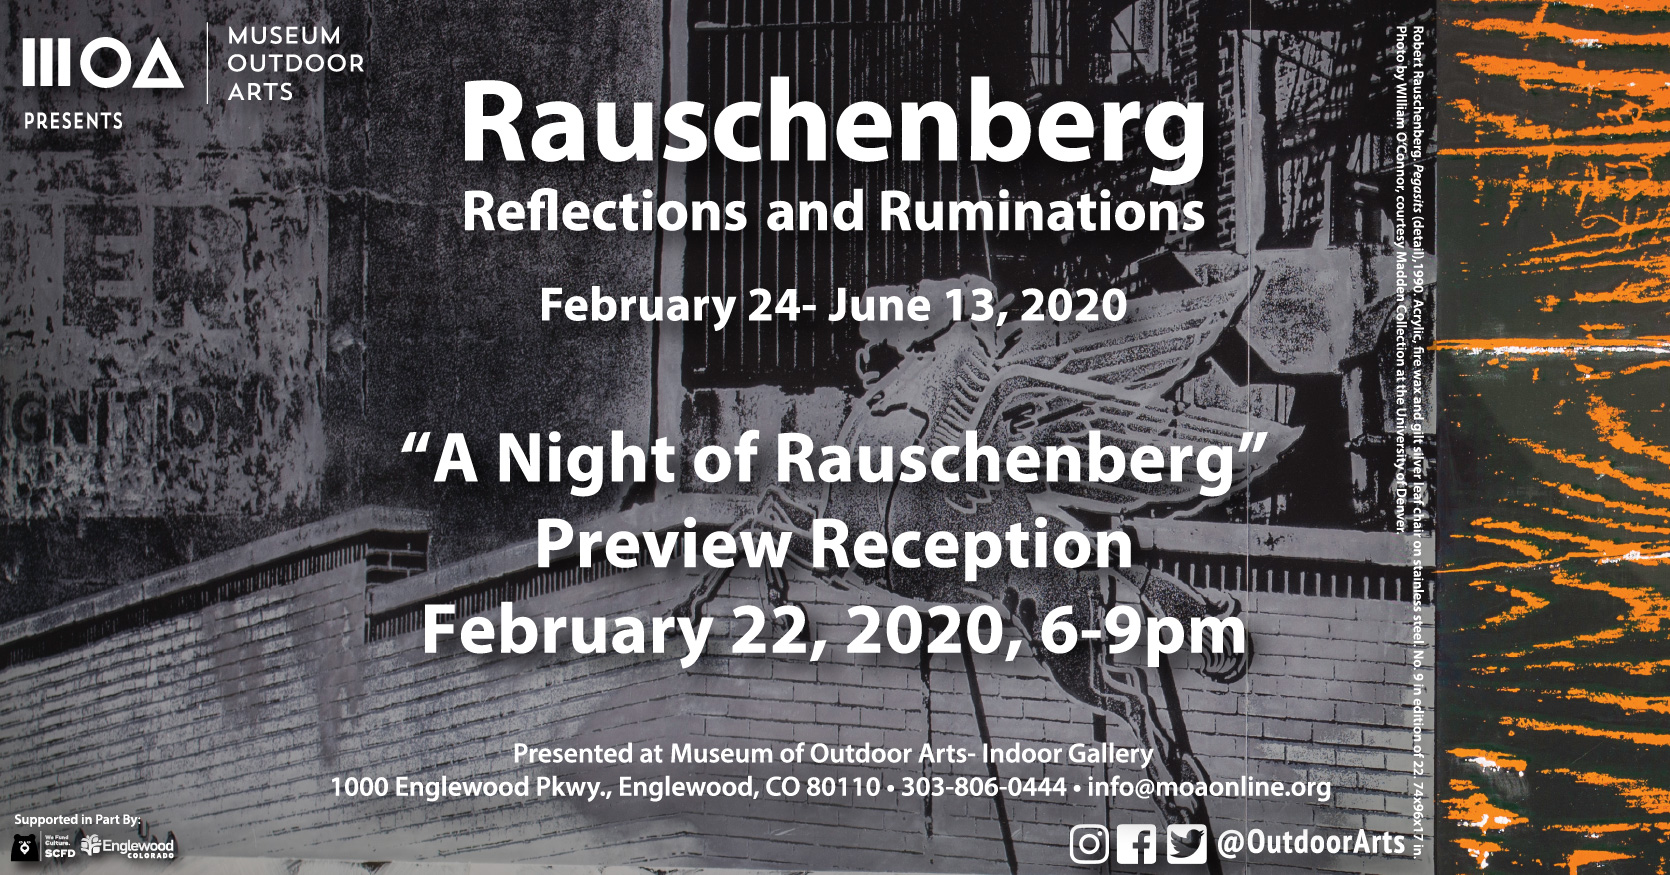 Tickets for A Night of Rauschenberg in Englewood from ShowClix